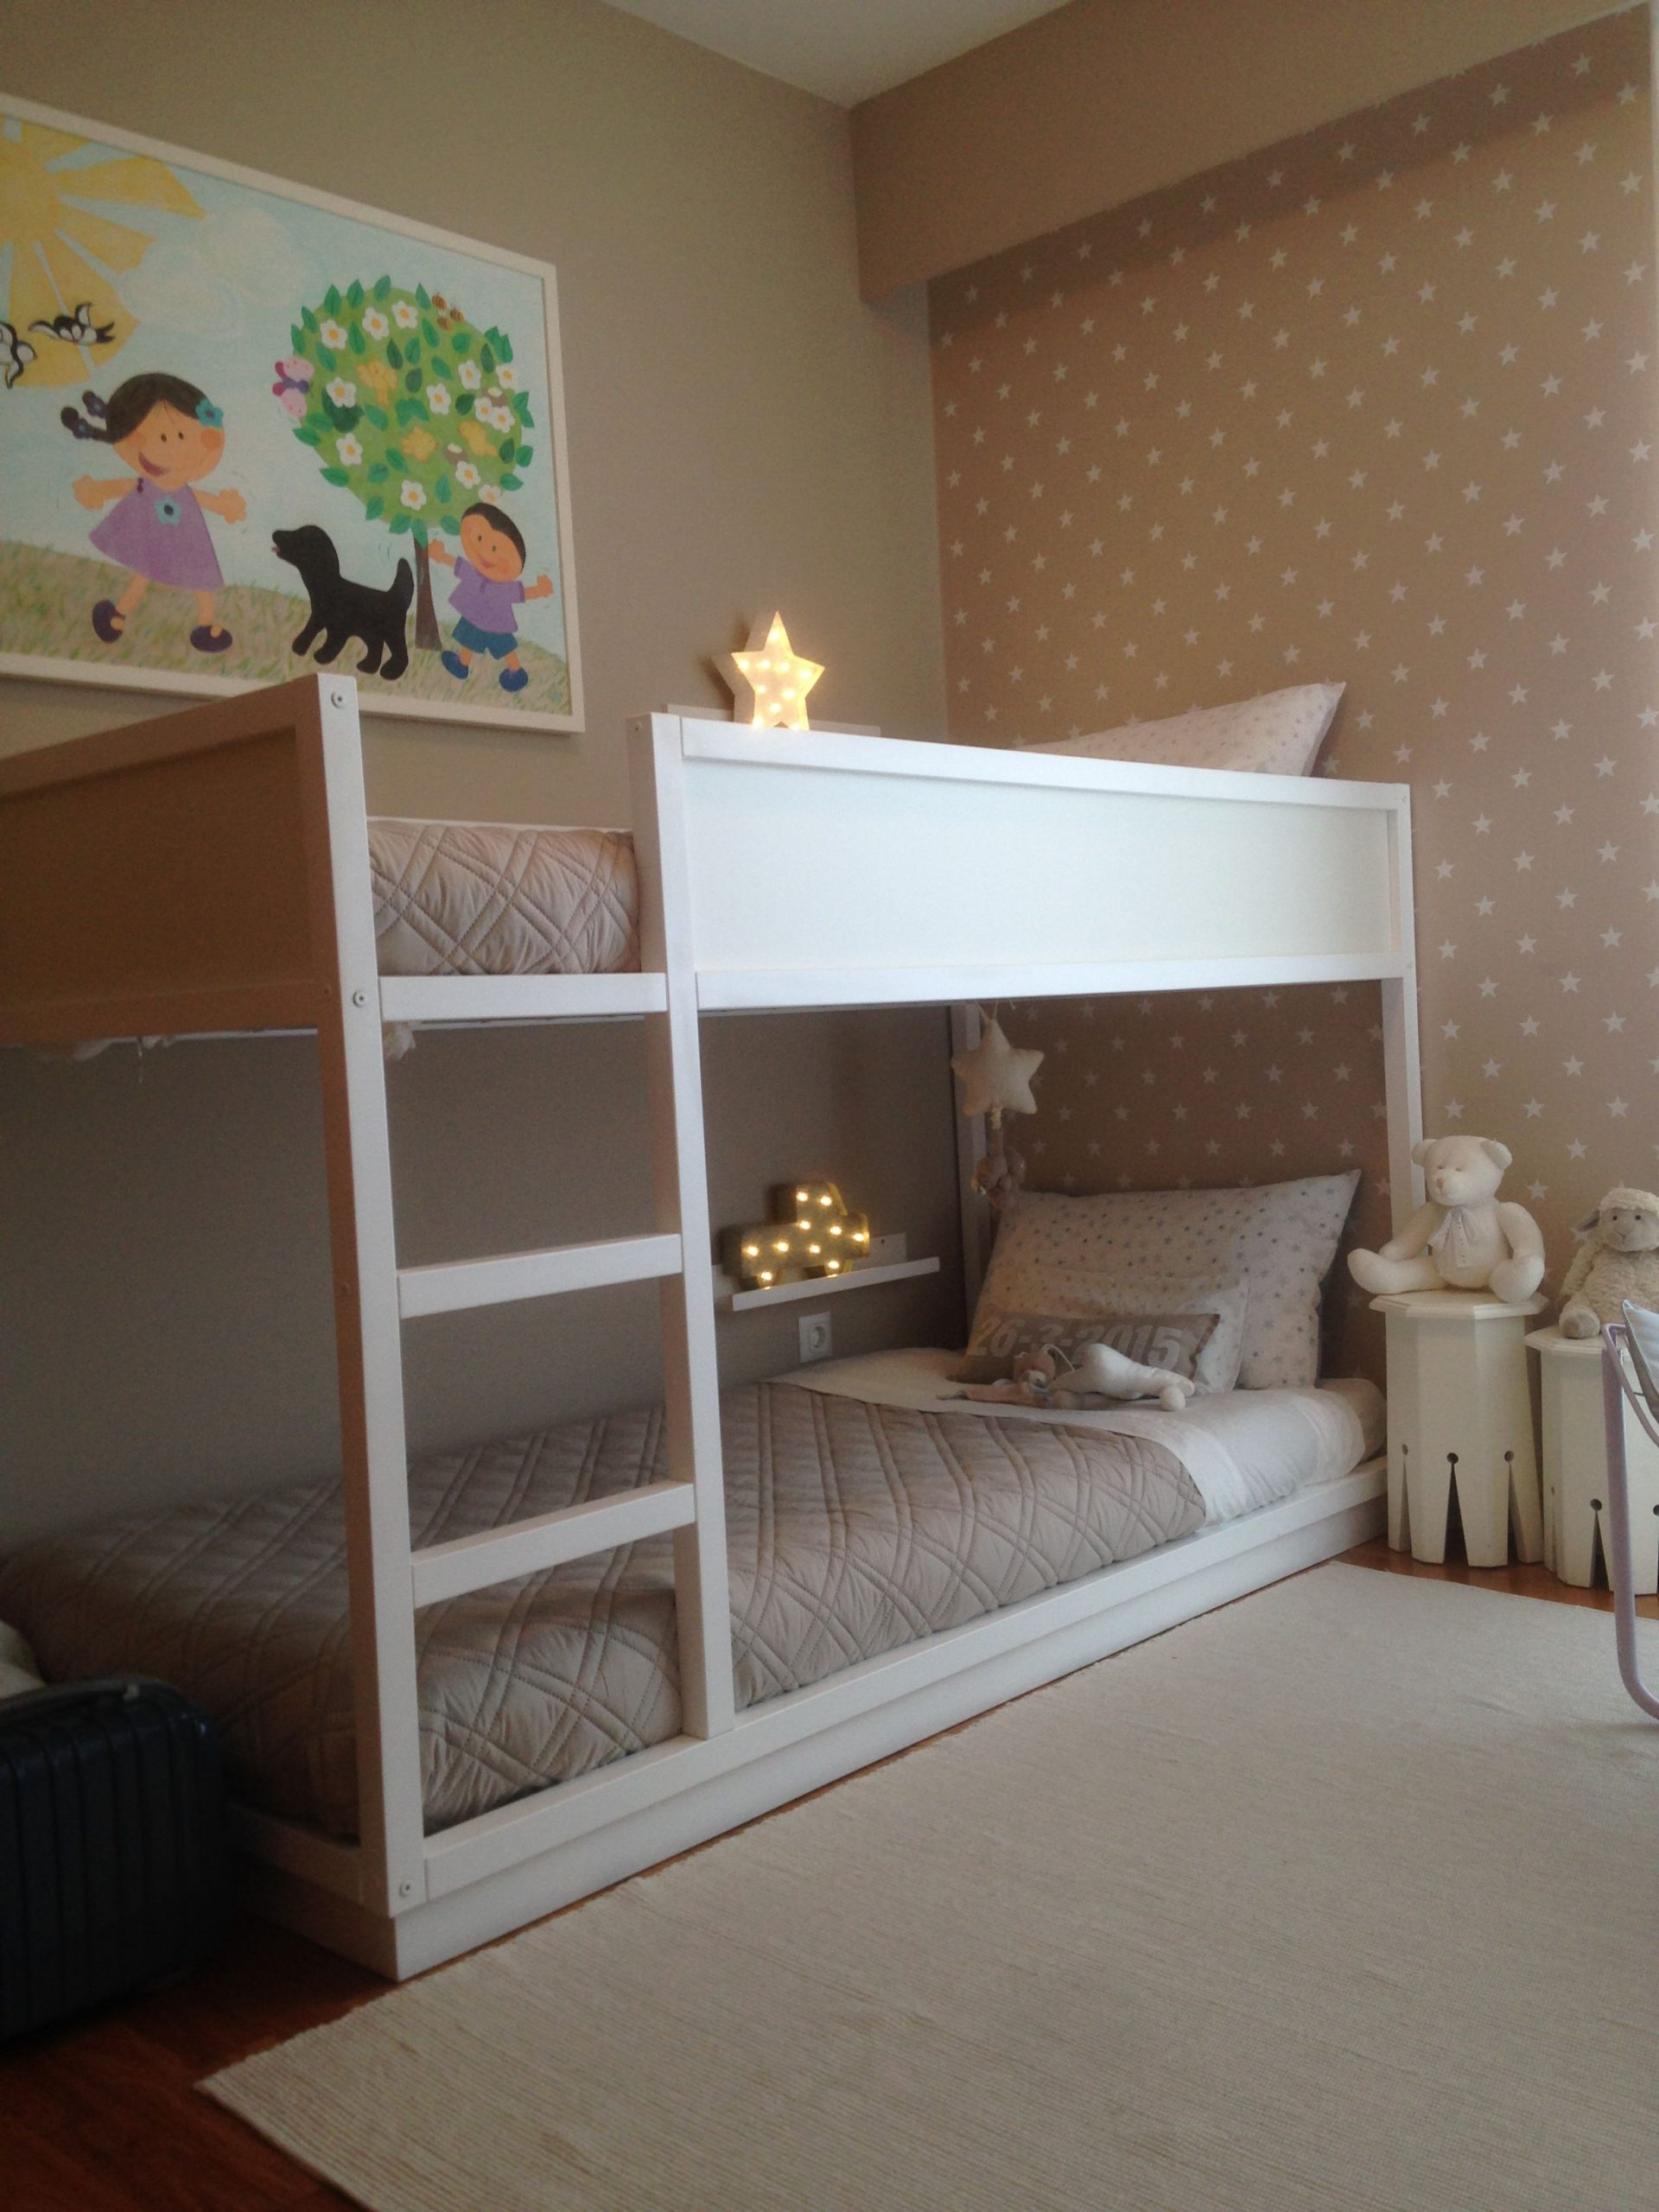 Full Size of Ikea Bett Kinder Kura Bed Hack Kinderzimmer Cars 140 Bette Floor Mädchen Betten Eiche Meise Barock Kinderspielhaus Garten Clinique Even Better Make Up Wasser Wohnzimmer Ikea Bett Kinder